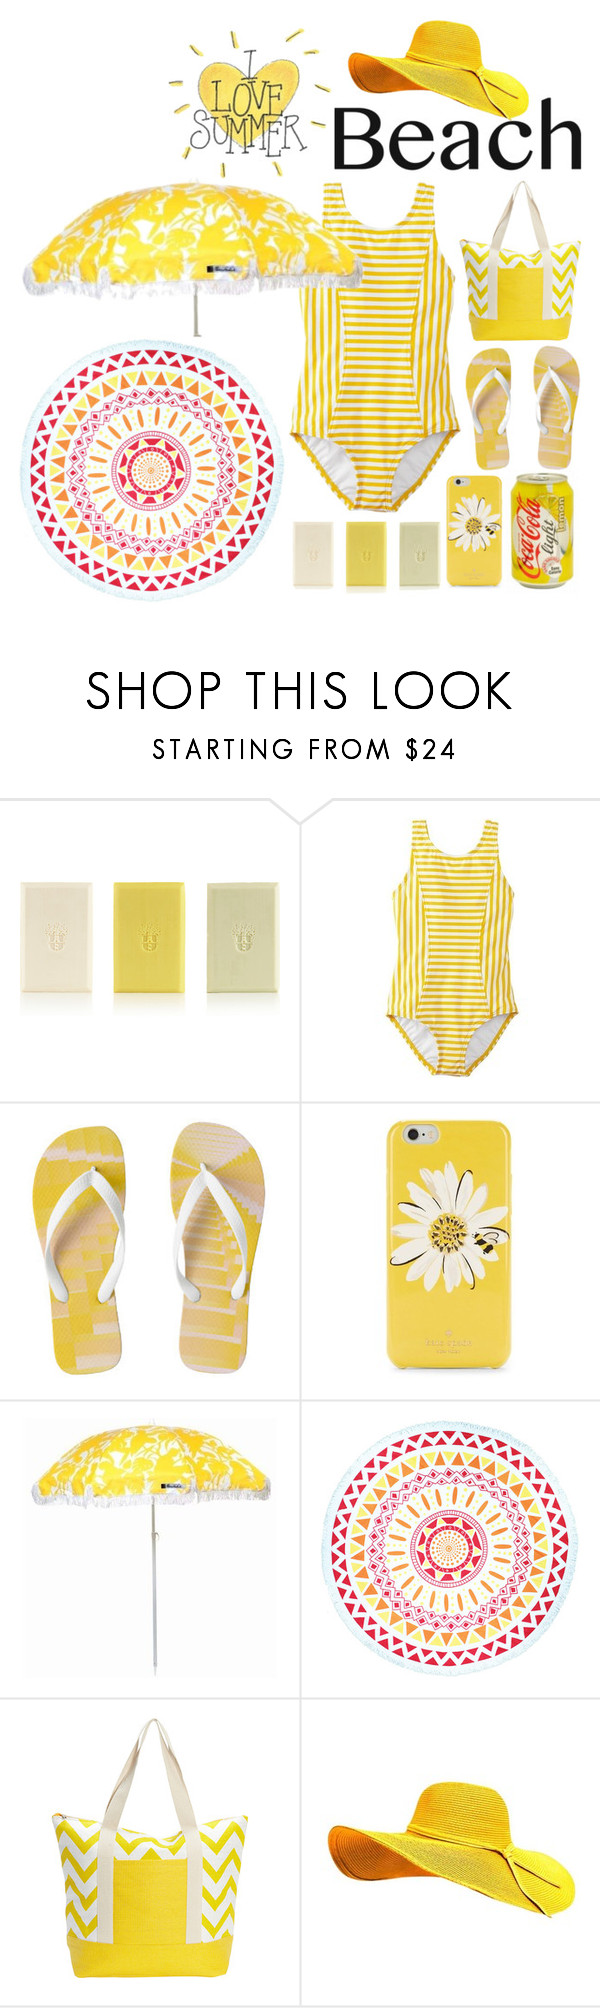 """Suns Out:  Beach Day"" by emcf3548 ❤ liked on Polyvore featuring Marianella, Kate Spade, Sunnylife, Beach Lulu, Magid and beachday"